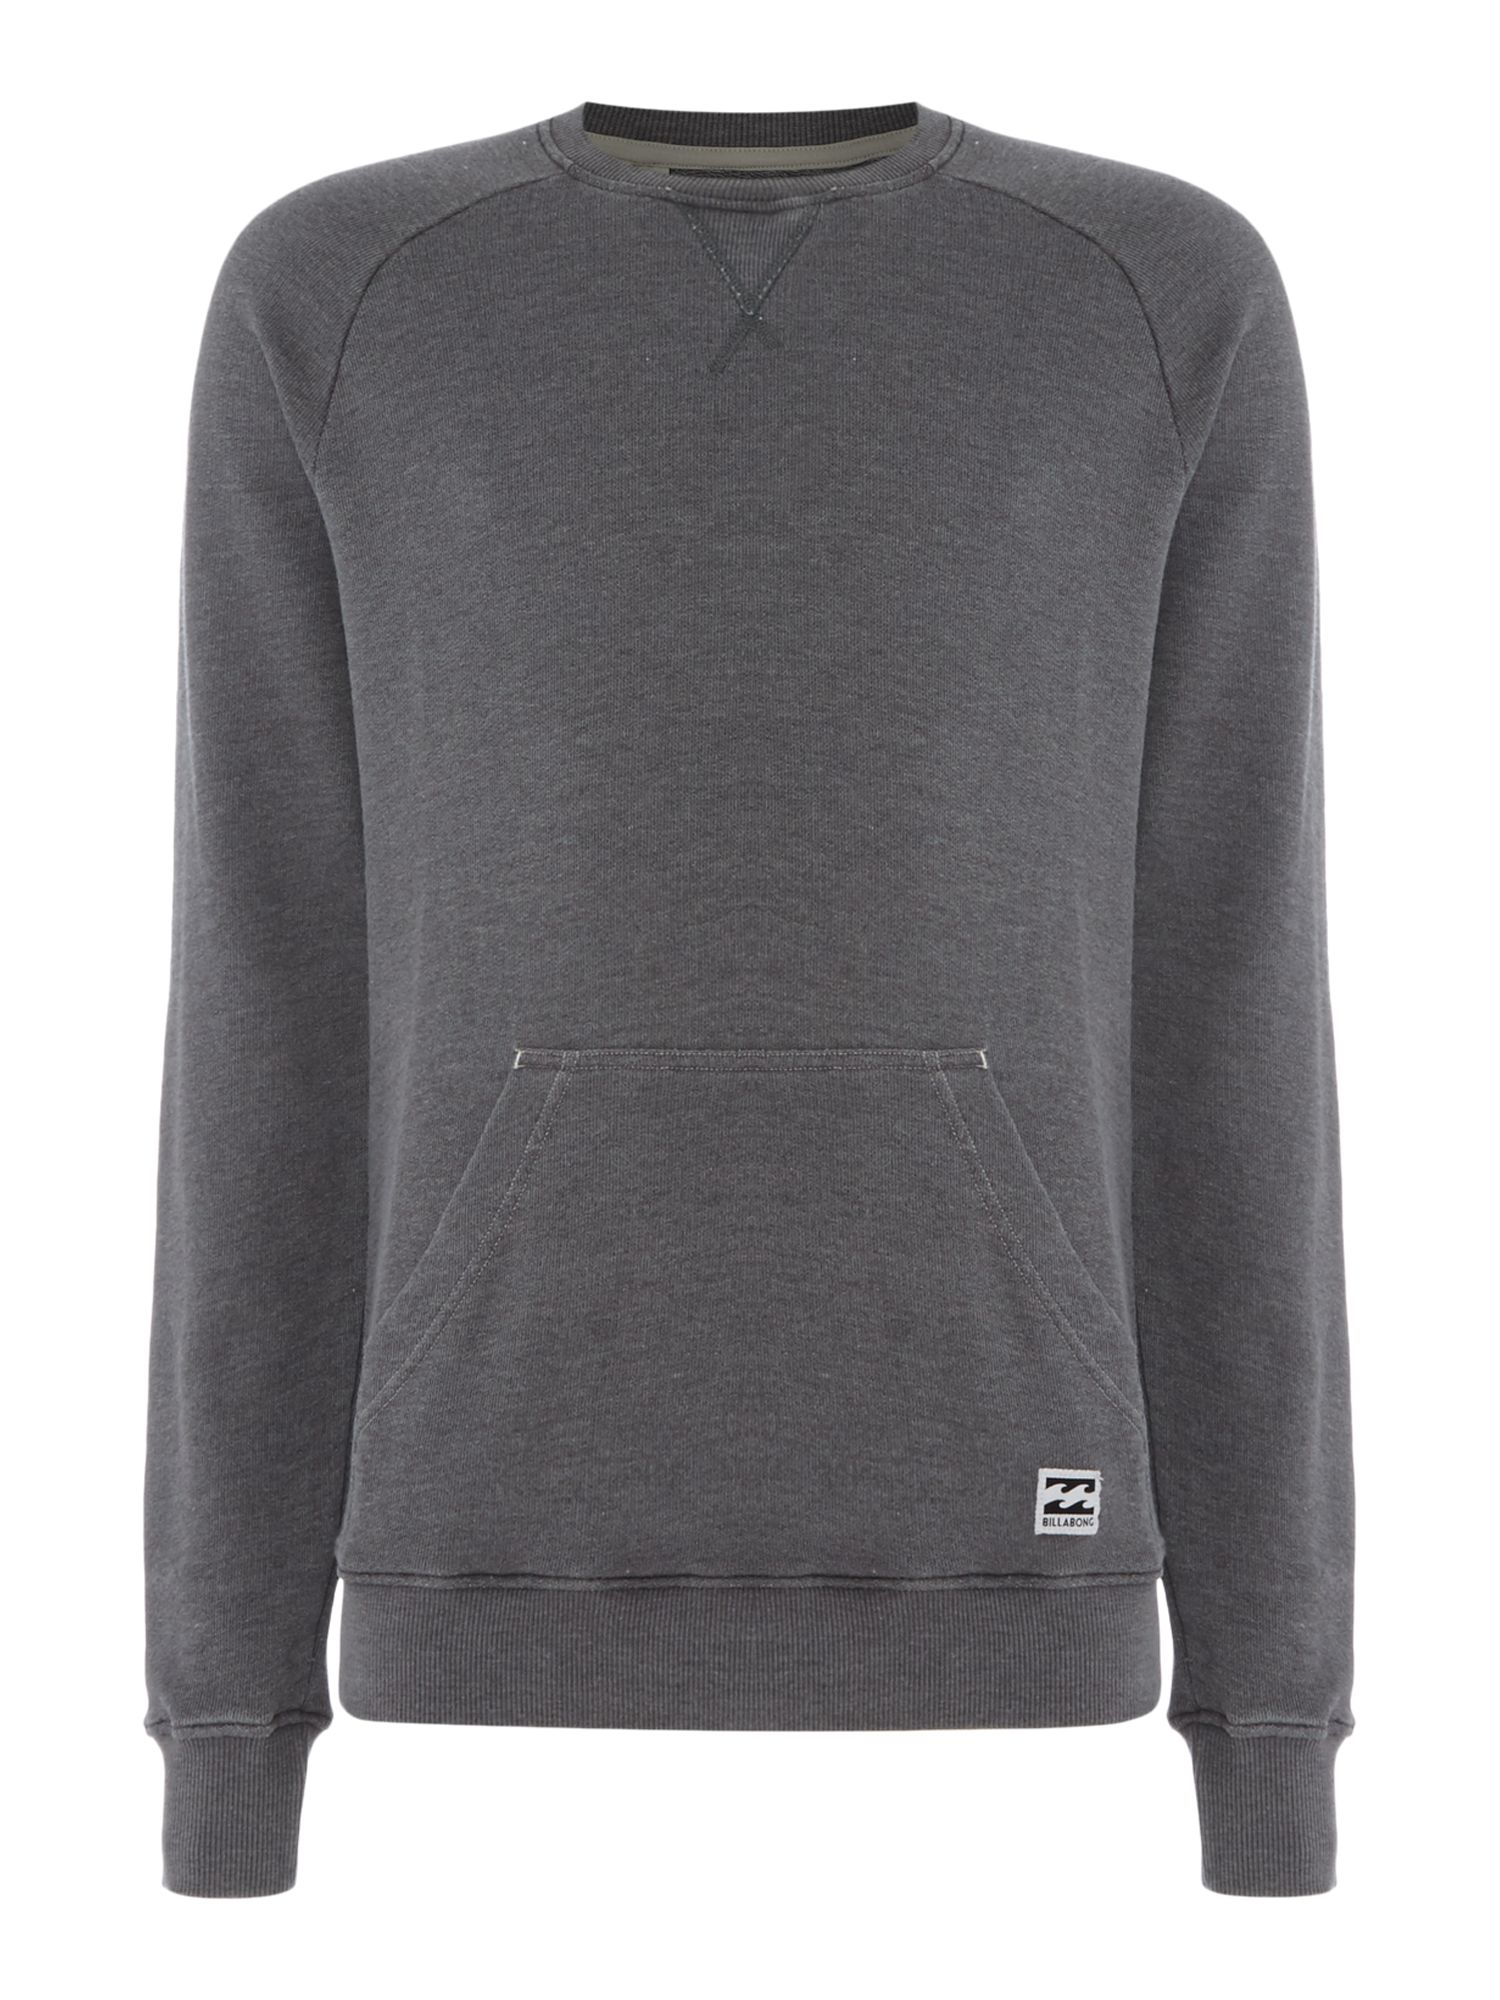 Men's Billabong Unbrushed Vintage Fleece, Grey